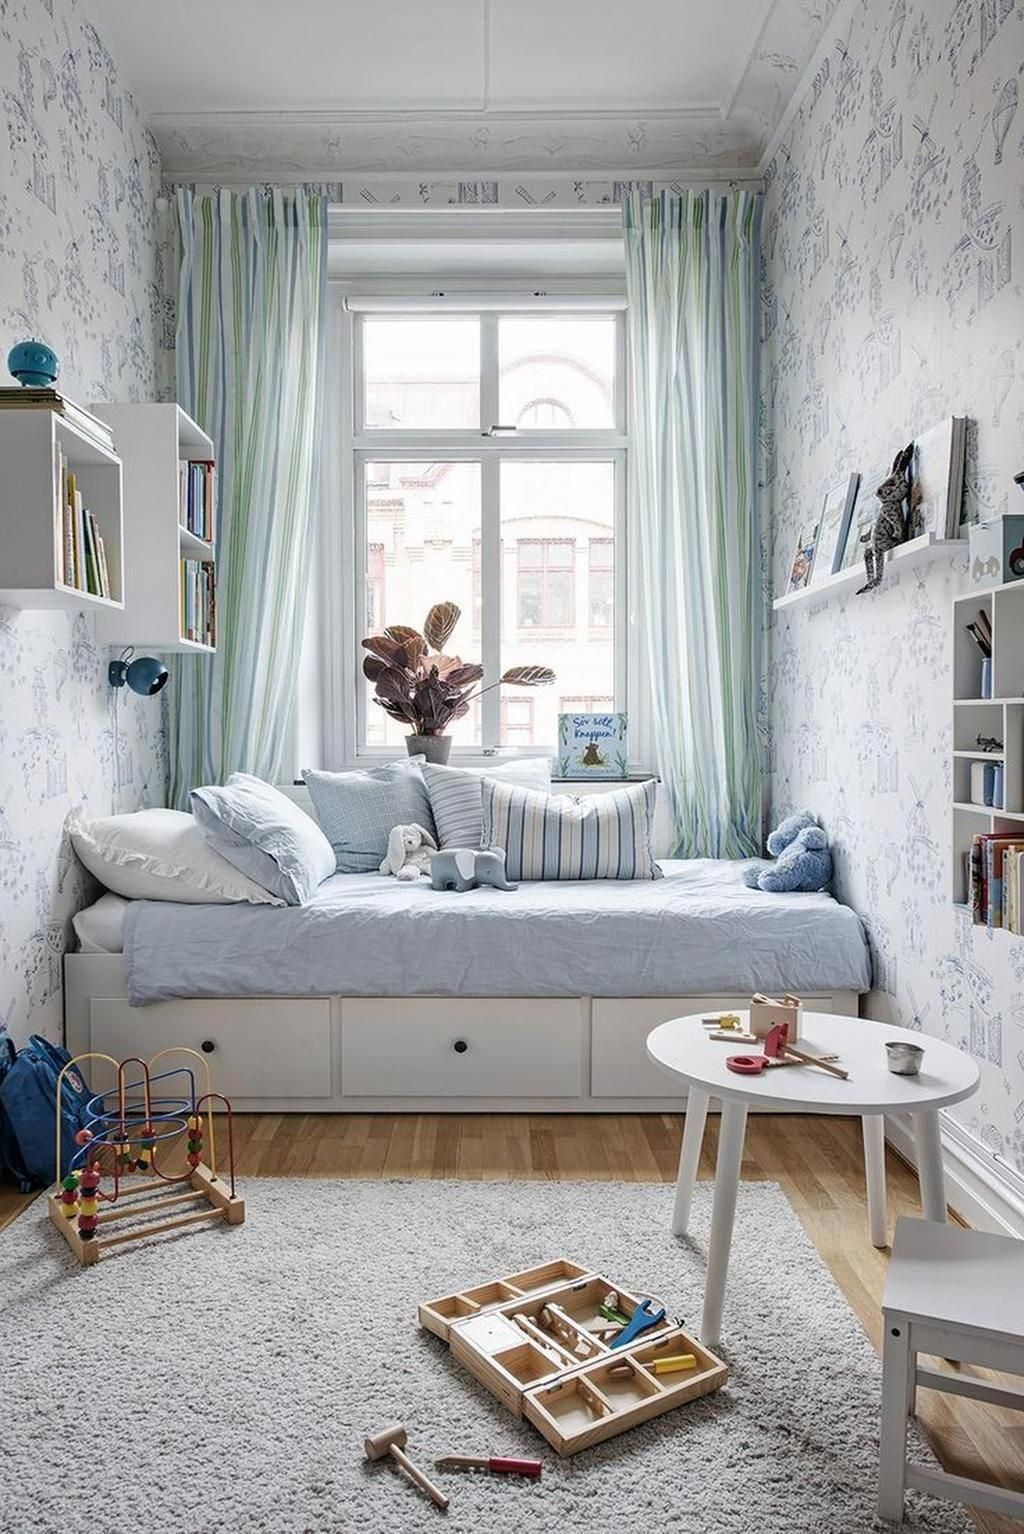 Small Kids Room Ideas Kidsbedroomideas With Images Small Apartment Bedrooms Apartment Bedroom Design Small Room Design